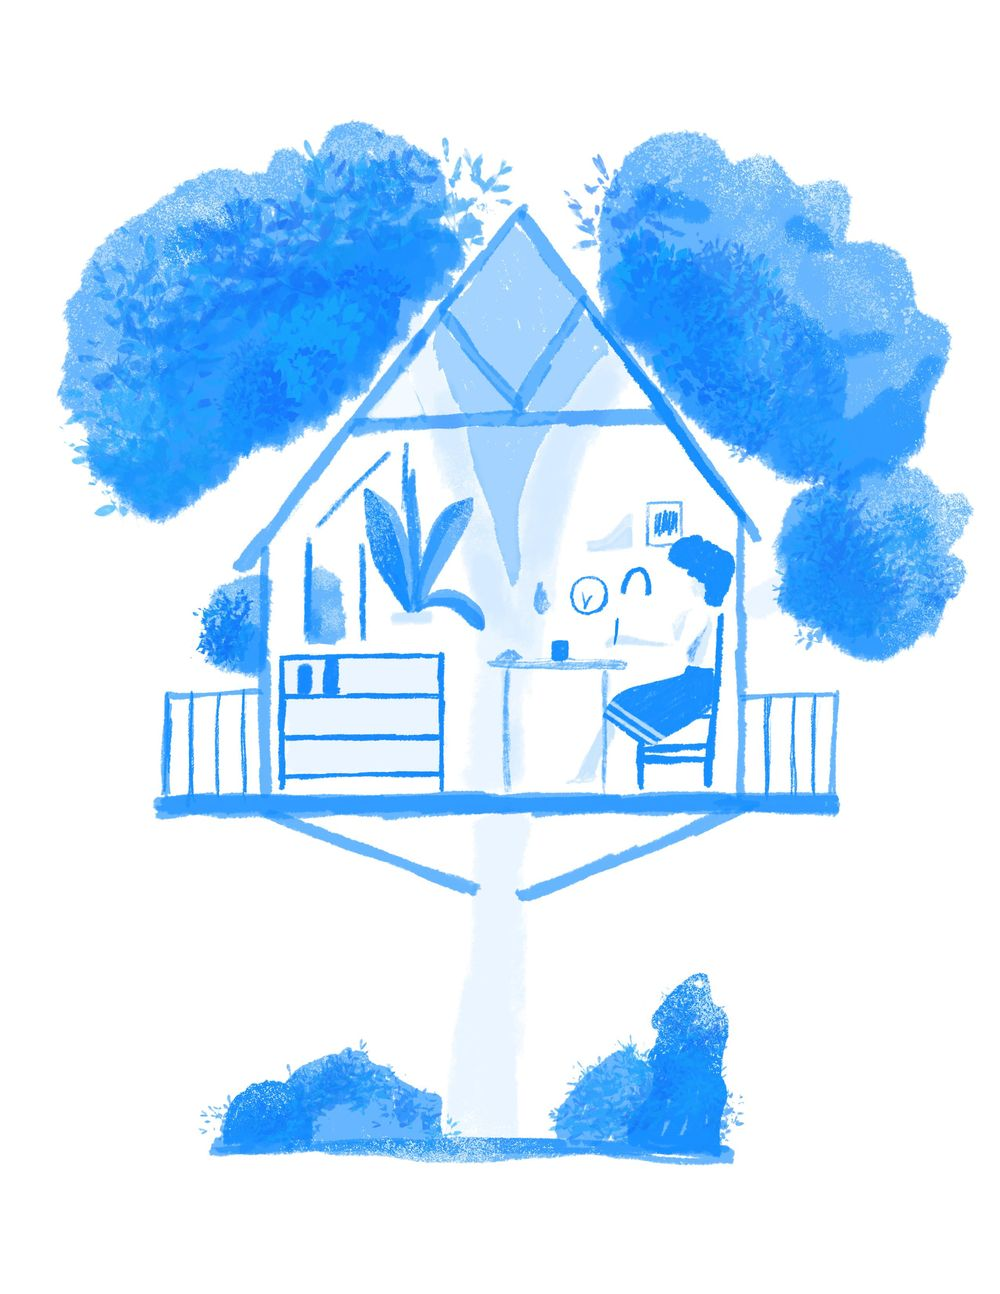 My dream studio: A Tree House - image 2 - student project